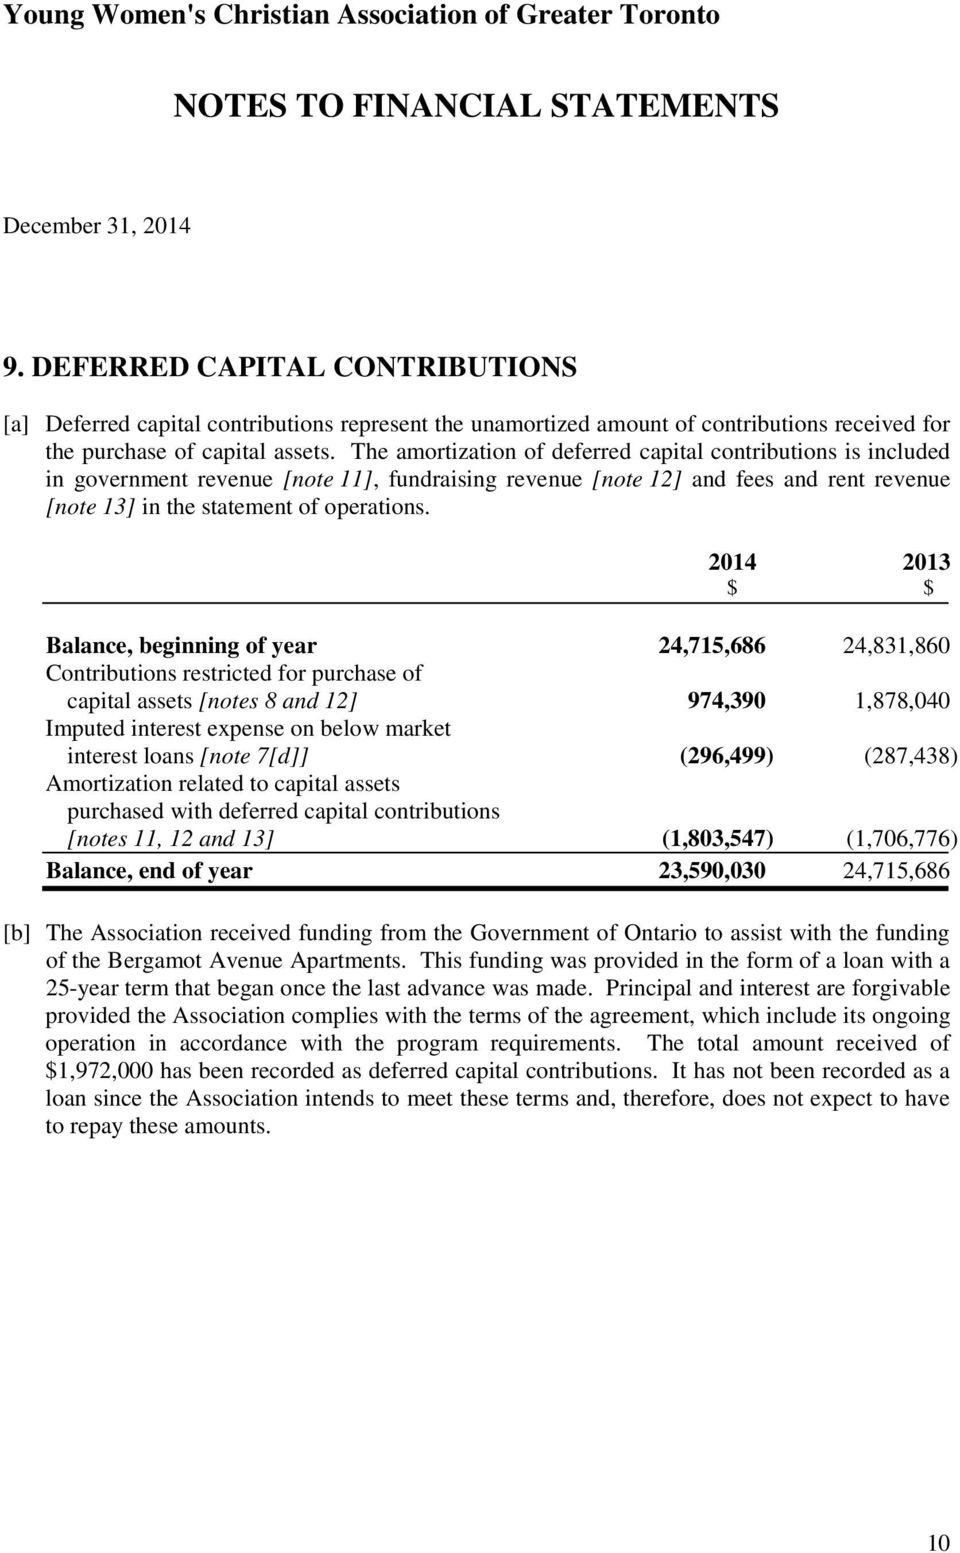 2014 2013 Balance, beginning of year 24,715,686 24,831,860 Contributions restricted for purchase of capital assets [notes 8 and 12] 974,390 1,878,040 Imputed interest expense on below market interest